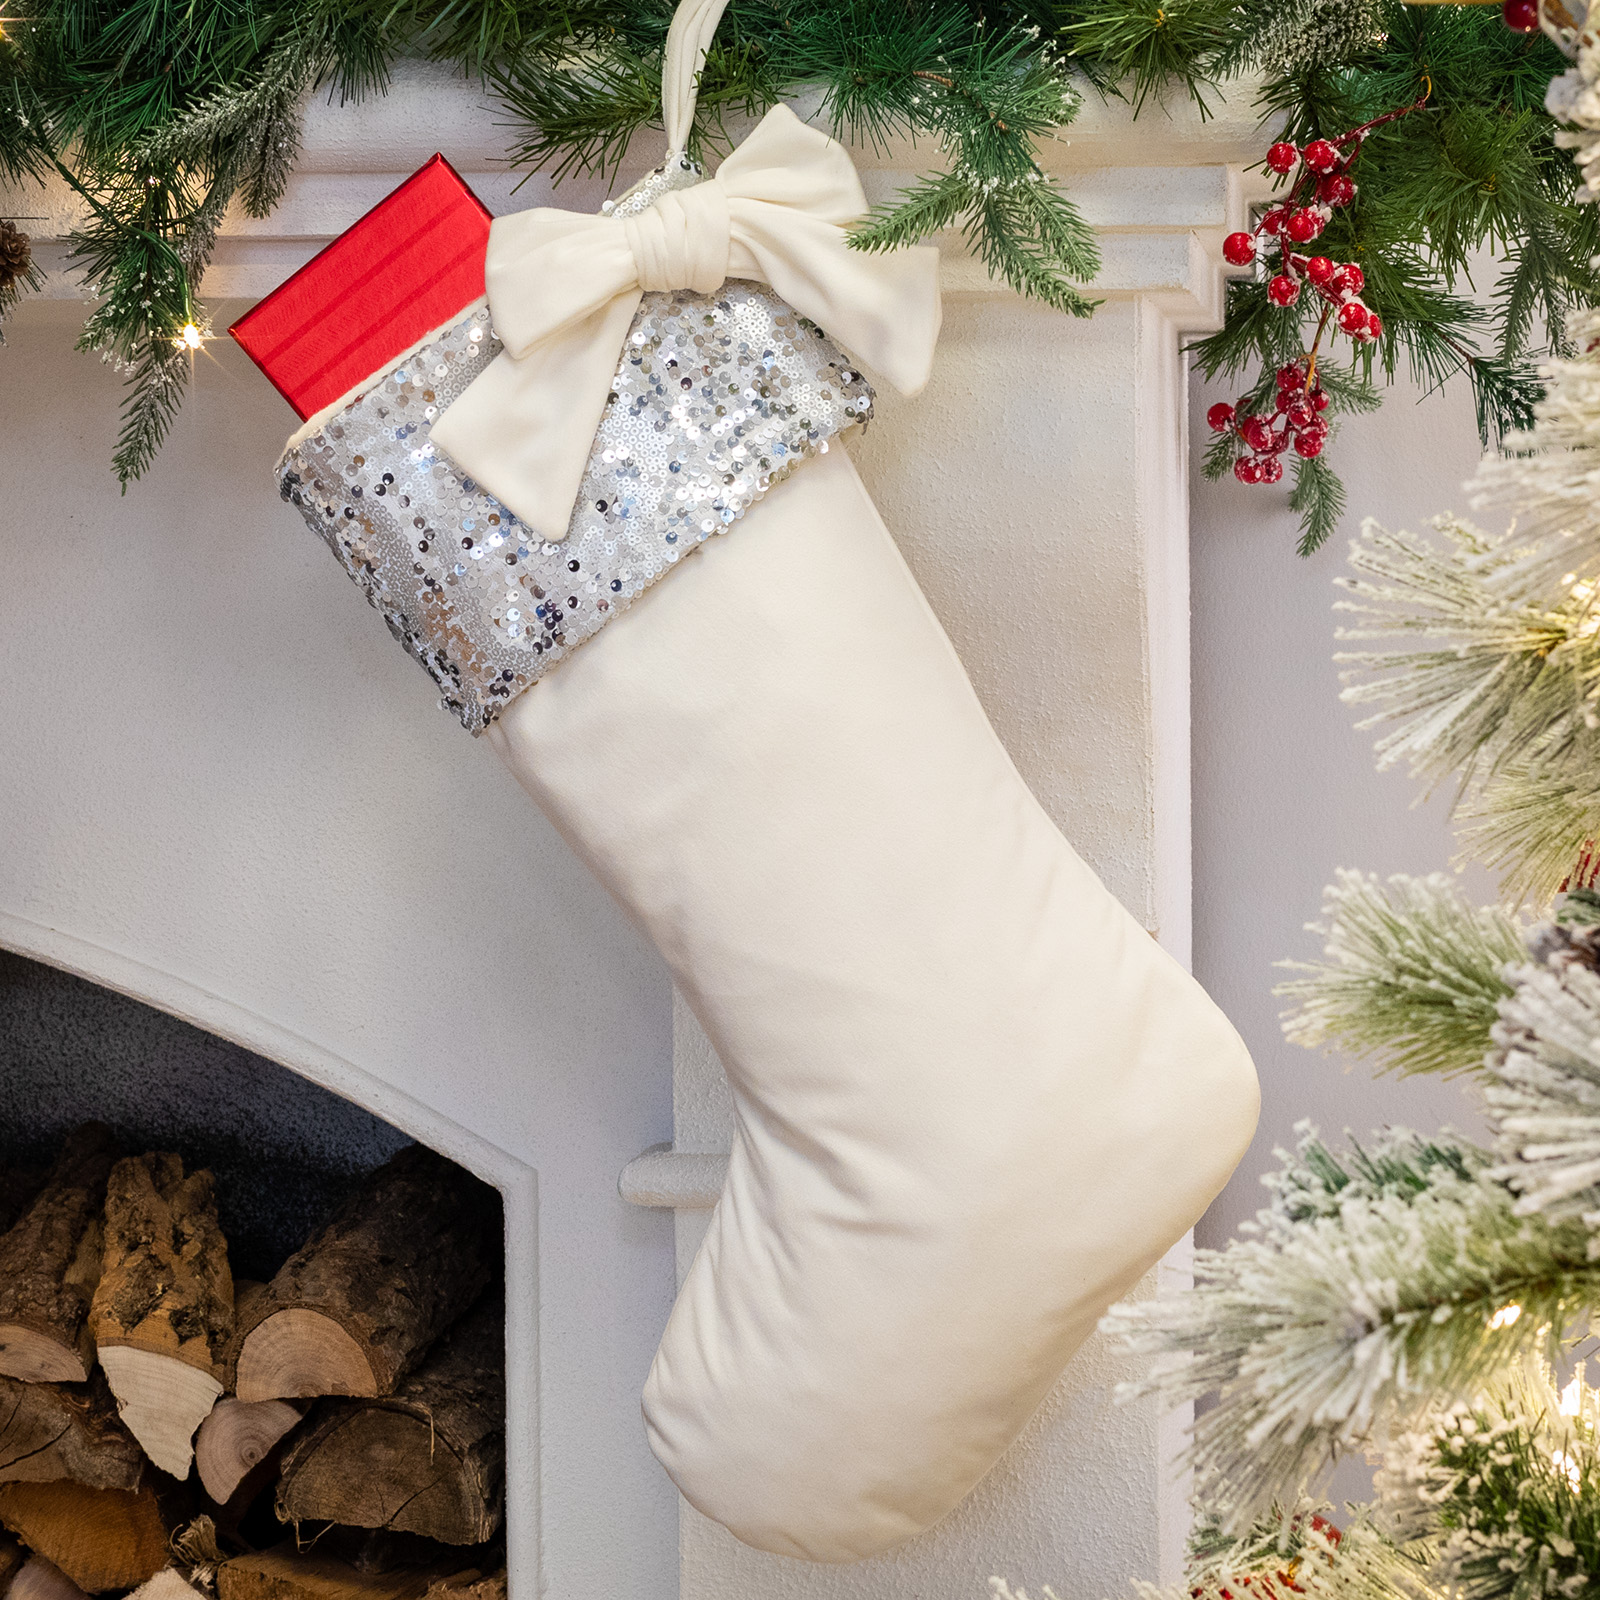 Belham Living Glitter Trim White Velvet Christmas Stocking, 18.5""